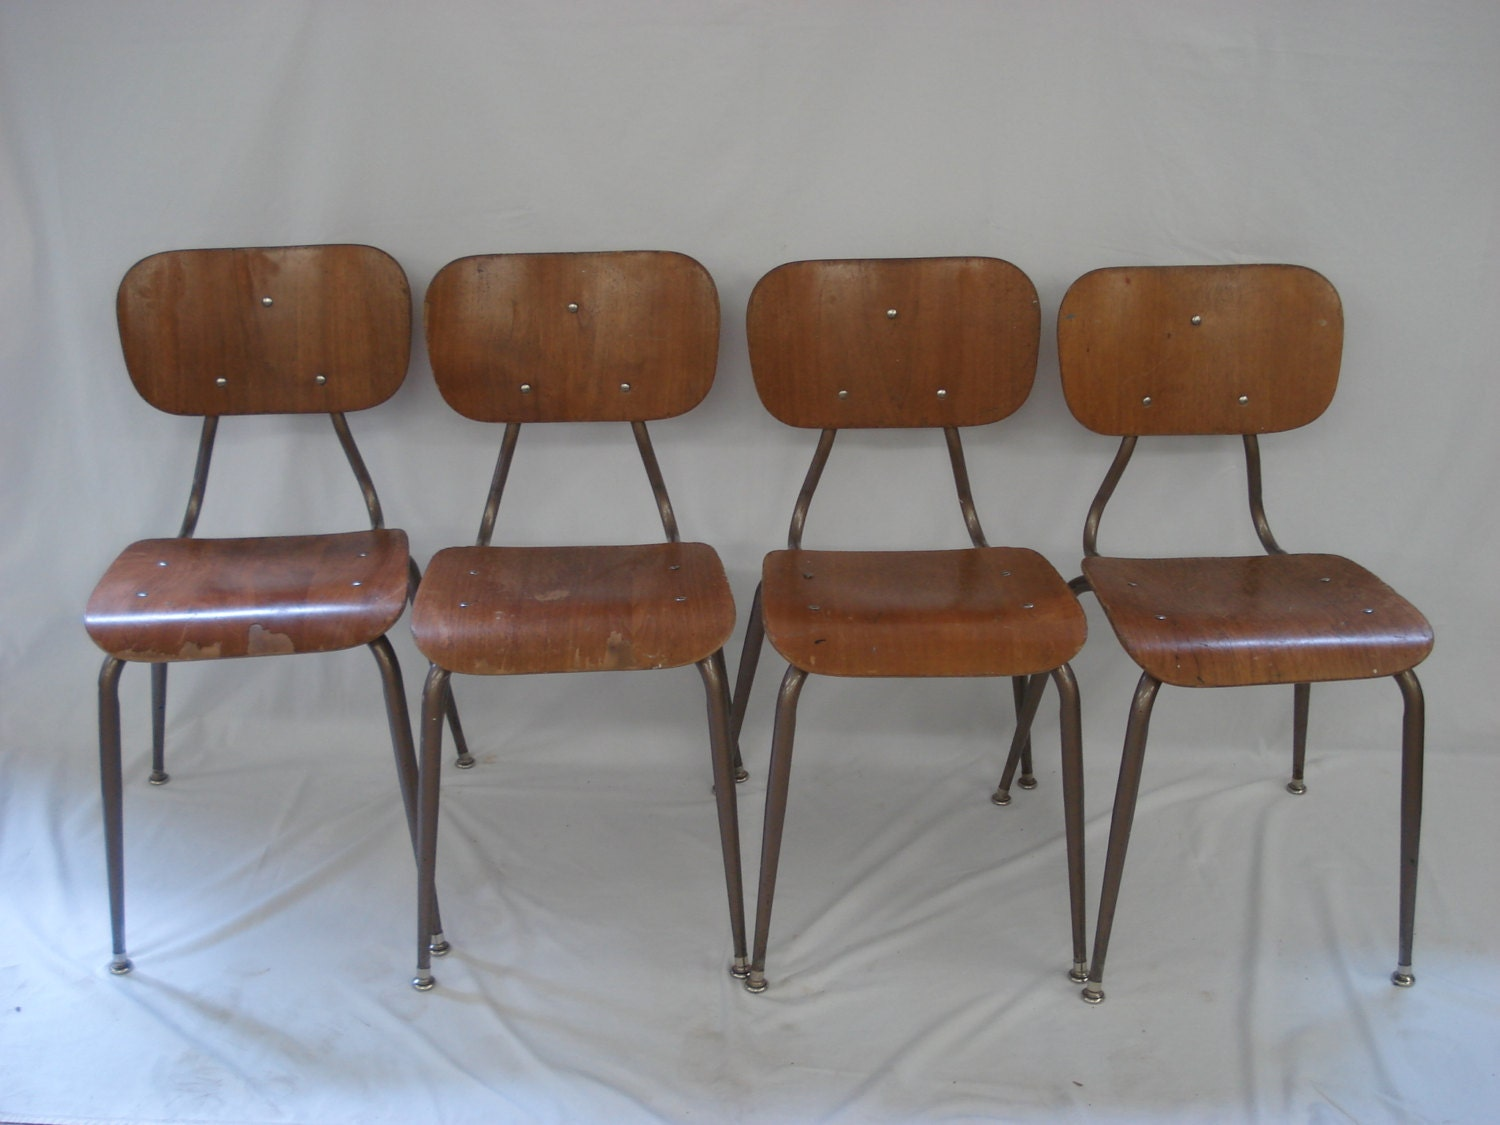 Retro wood kitchen school dining chairs mid century modern for Retro modern dining chairs